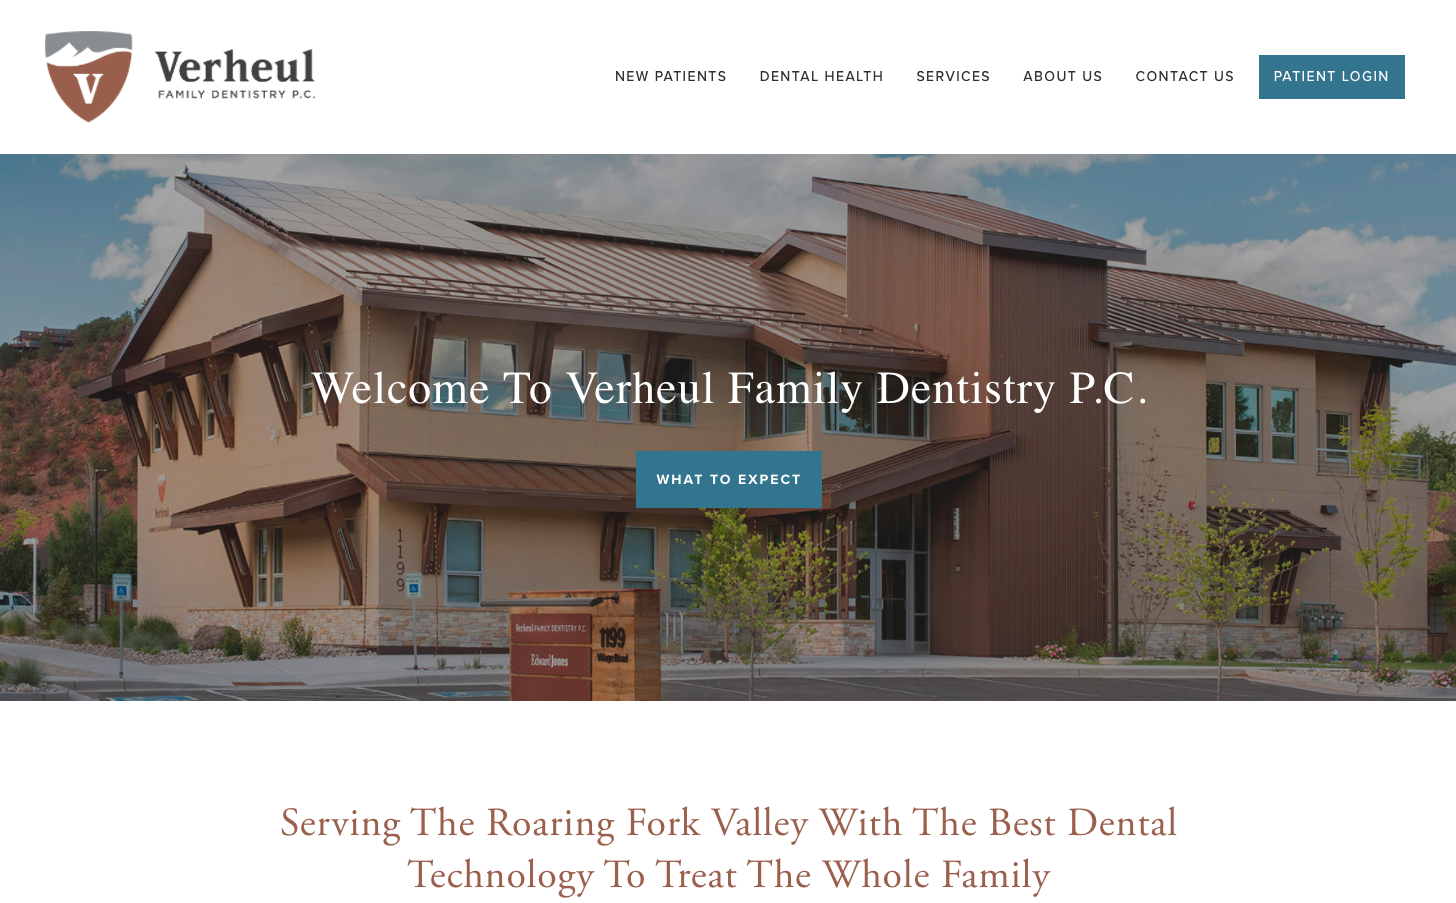 Verheul Family Dentistry